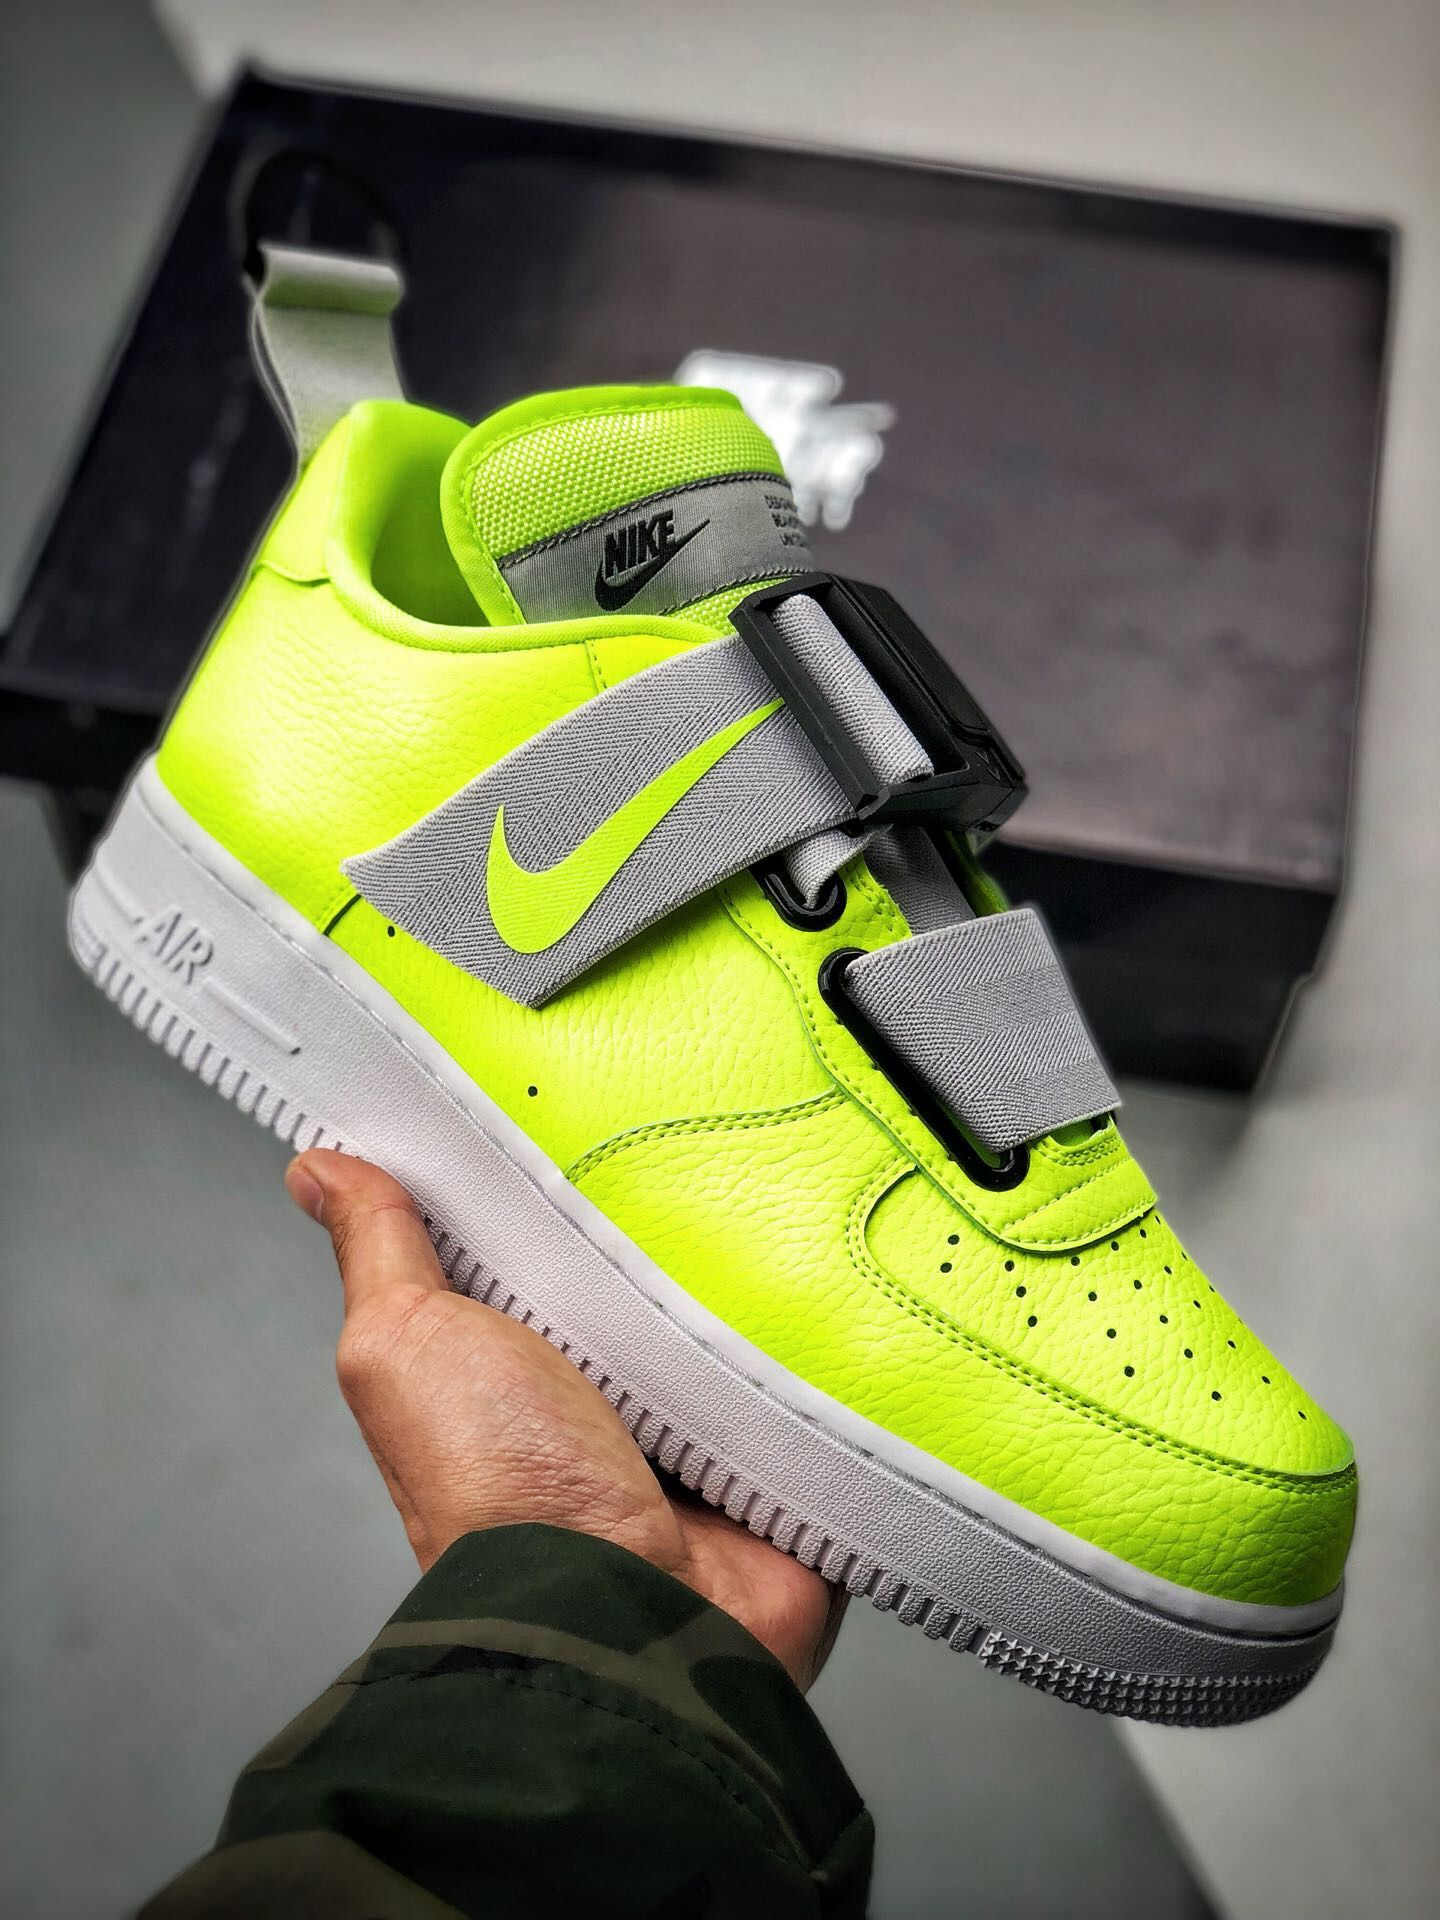 NIKE AIR FORCE 1 Utility QS AO1531 700